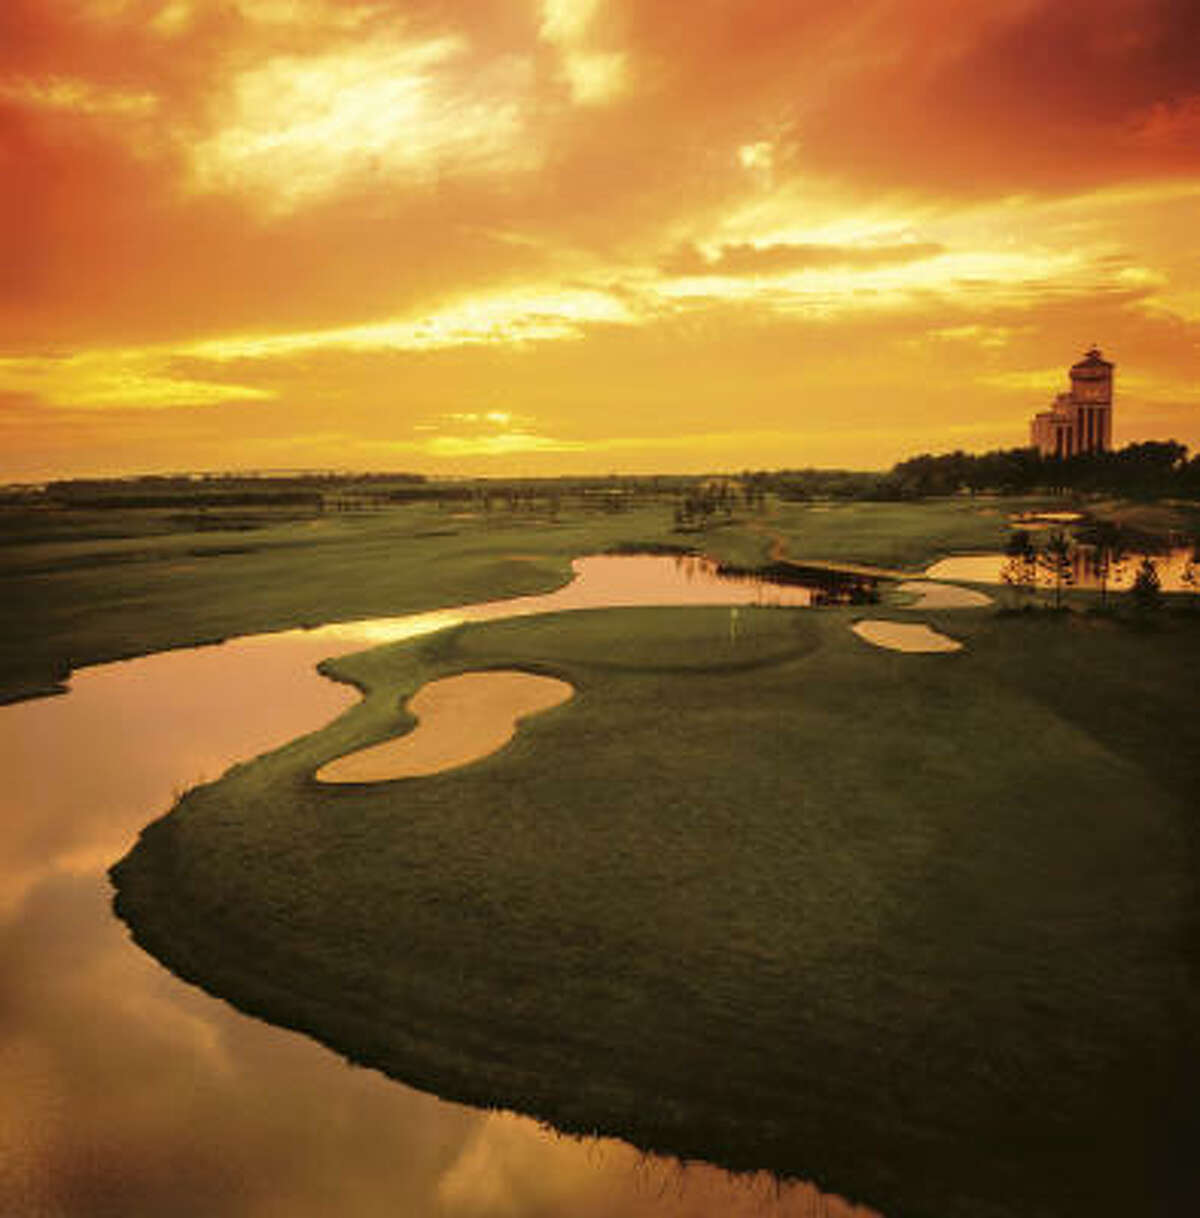 Contraband Bayou Golf Club, hole #17, at sunset at the L'Auberge du Lac Hotel & Casino in Lake Charles, LA